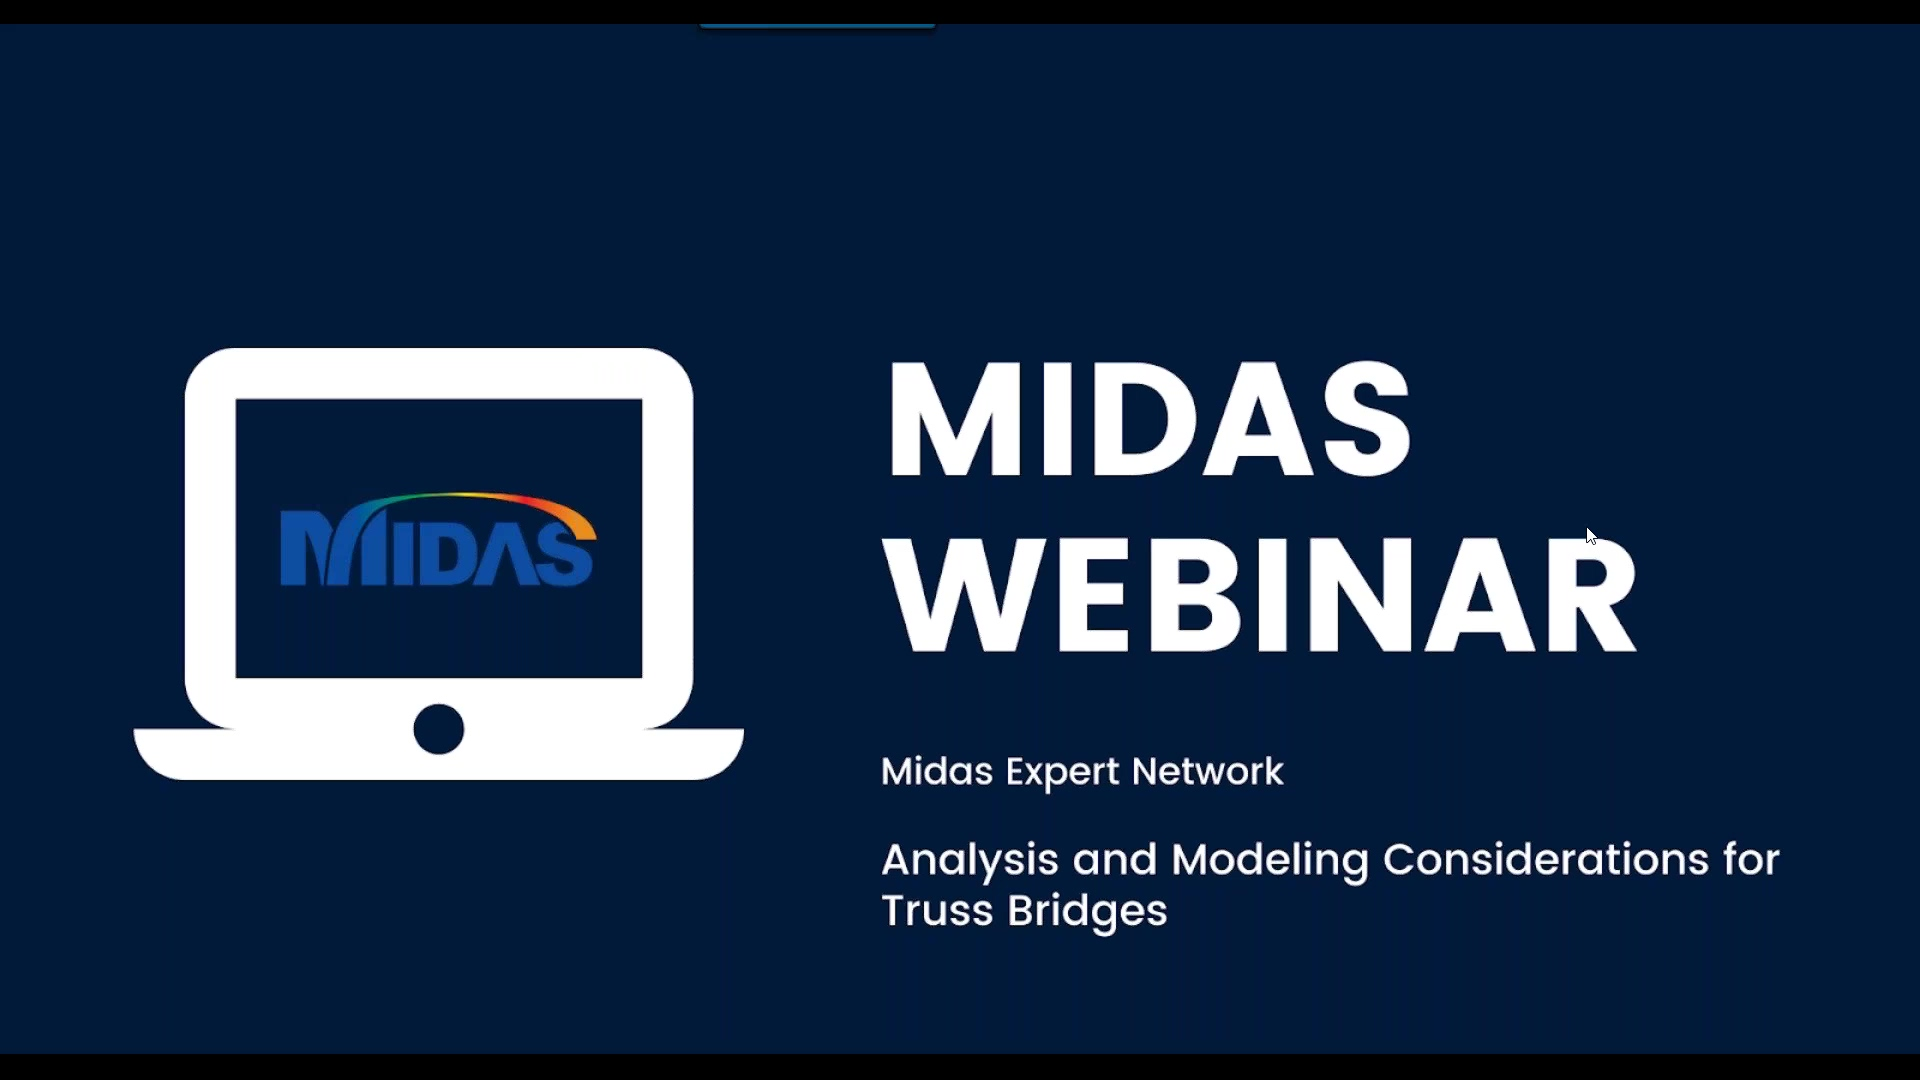 Webinar: Analysis and Modeling Considerations for Truss Bridges